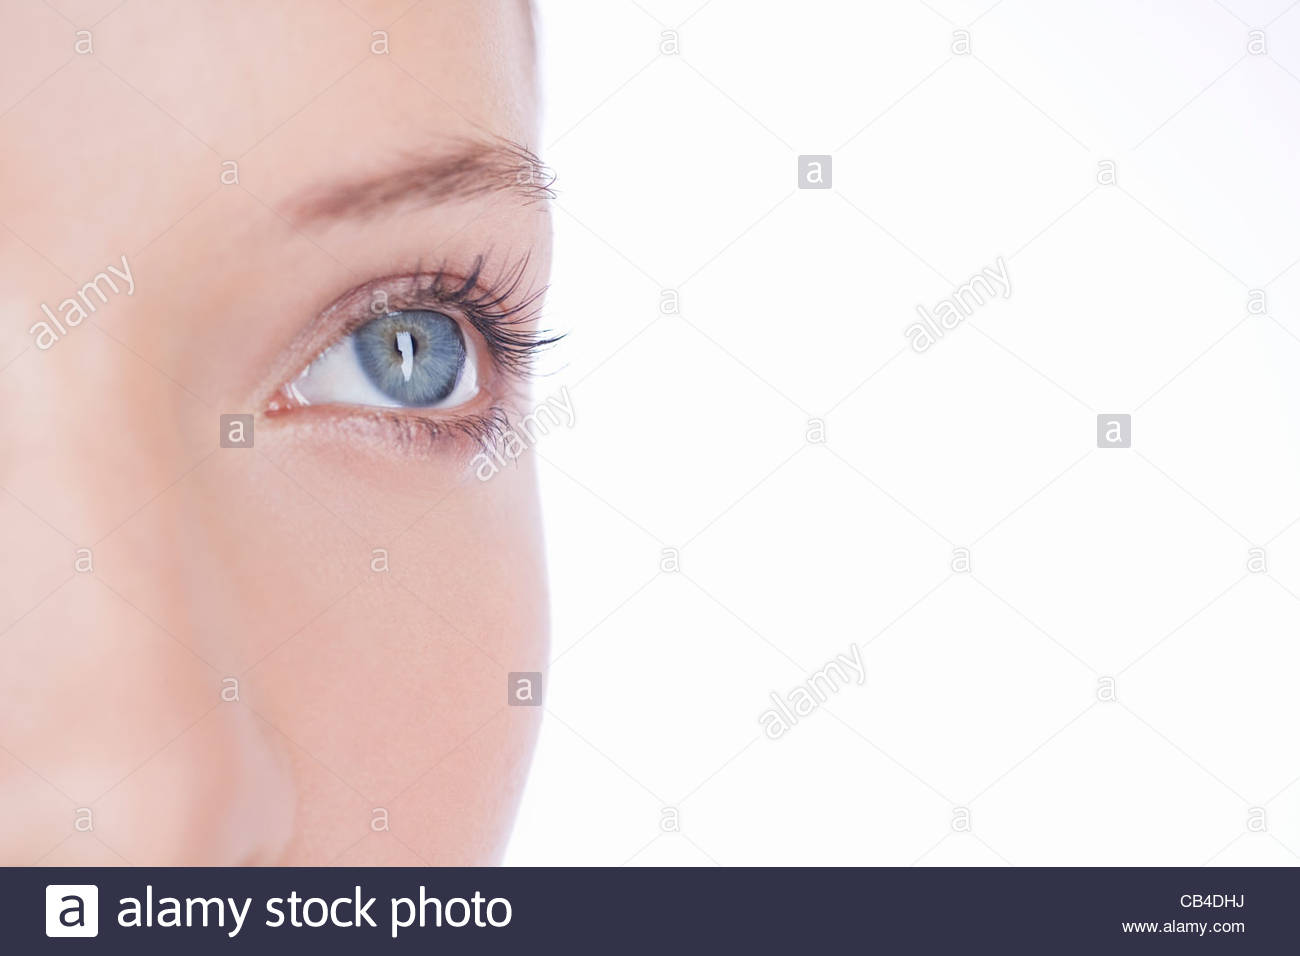 Close-up of a woman's left eye - Stock Image